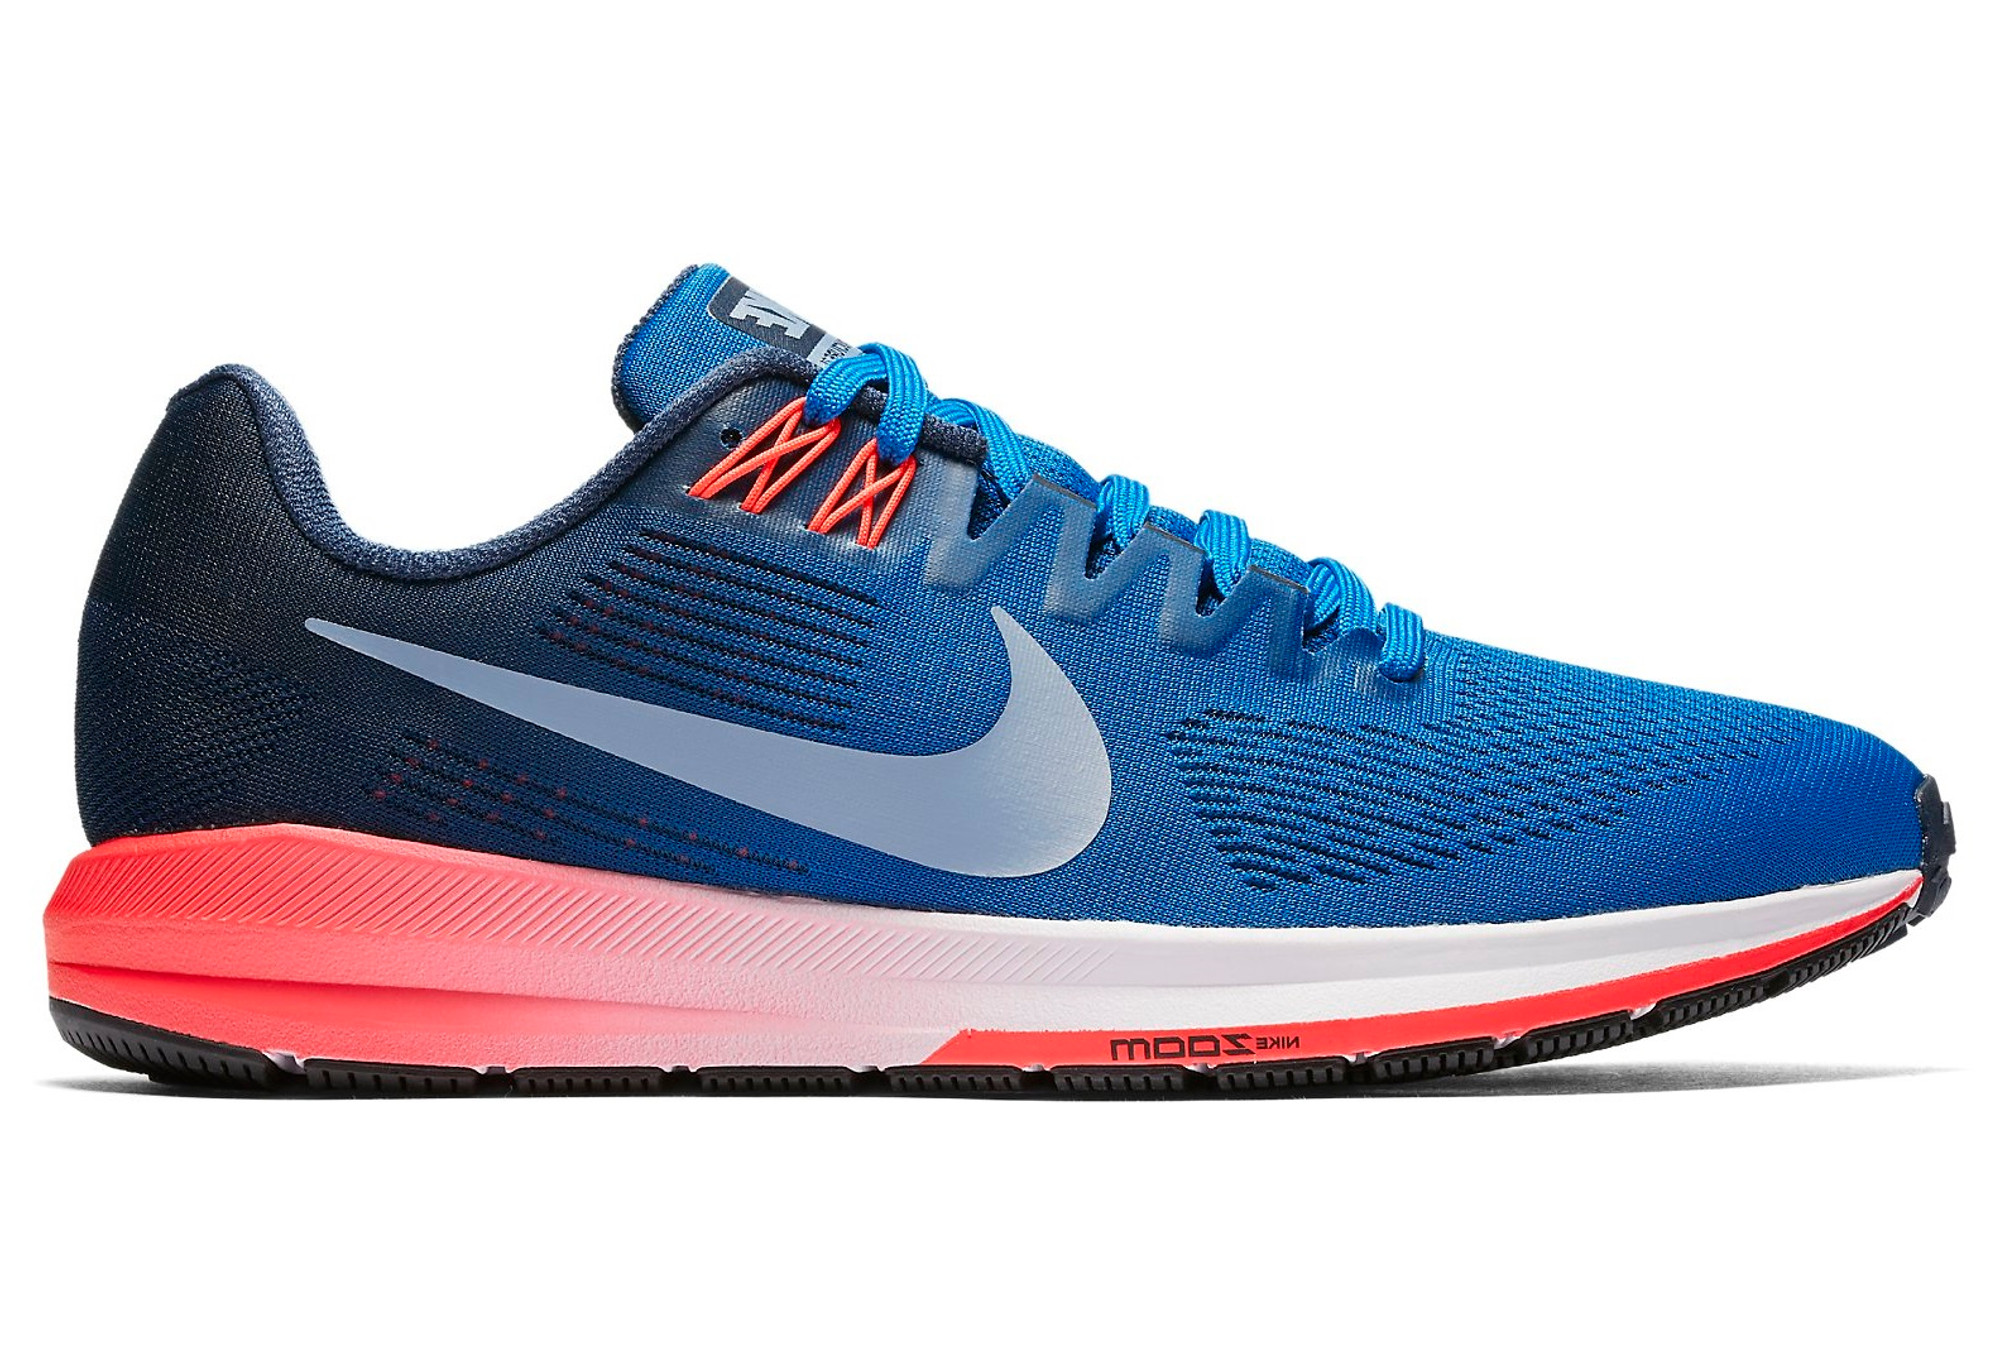 Chaussures de Running Nike Air Zoom Structure 21 Bleu   Rose ... f4ab83b7e4a